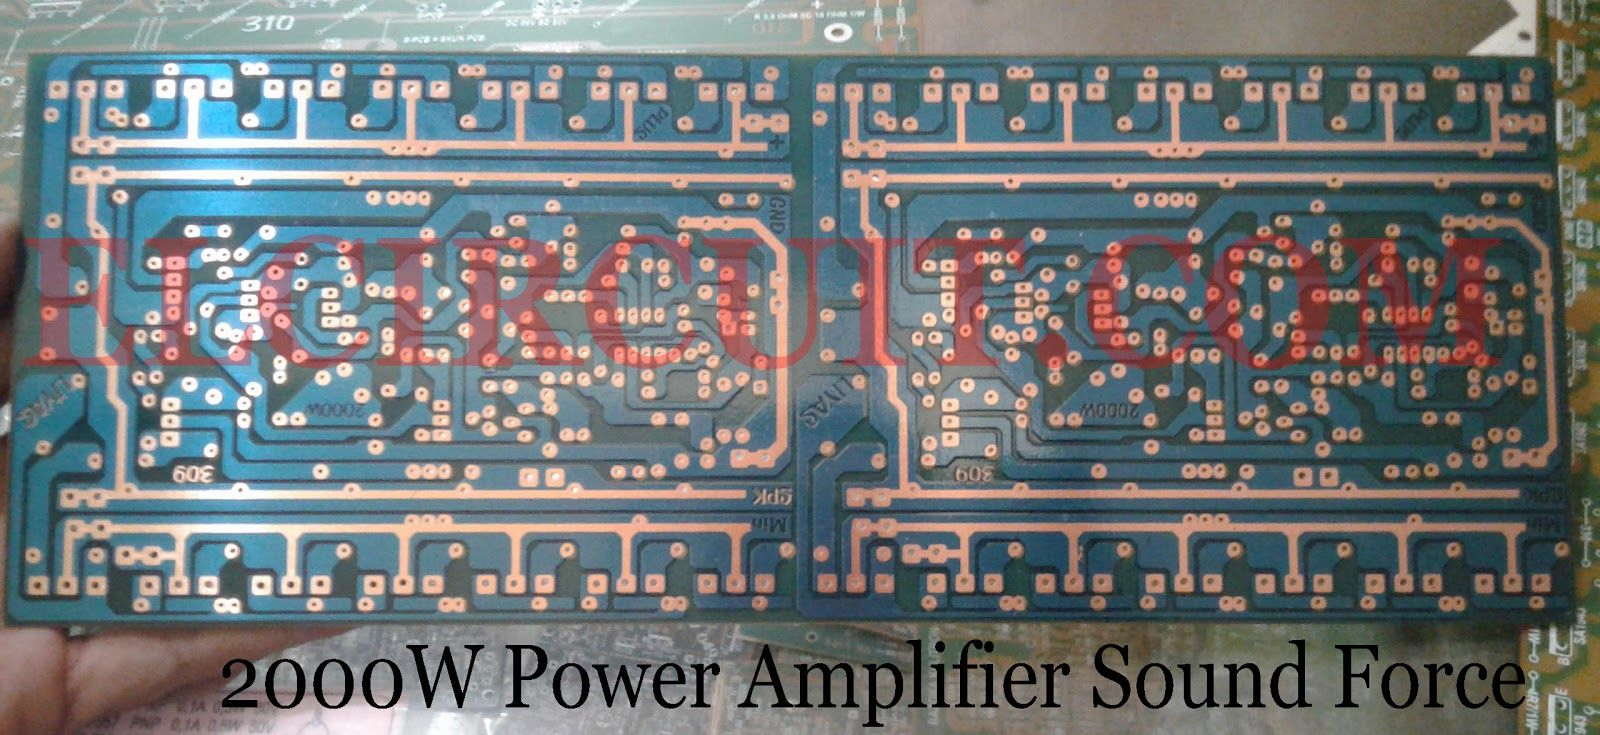 small resolution of 2000w power amplifier circuit complete pcb layout in 2019 2000w audio amplifier circuit diagram pdf 2000w audio amplifier circuit diagrams